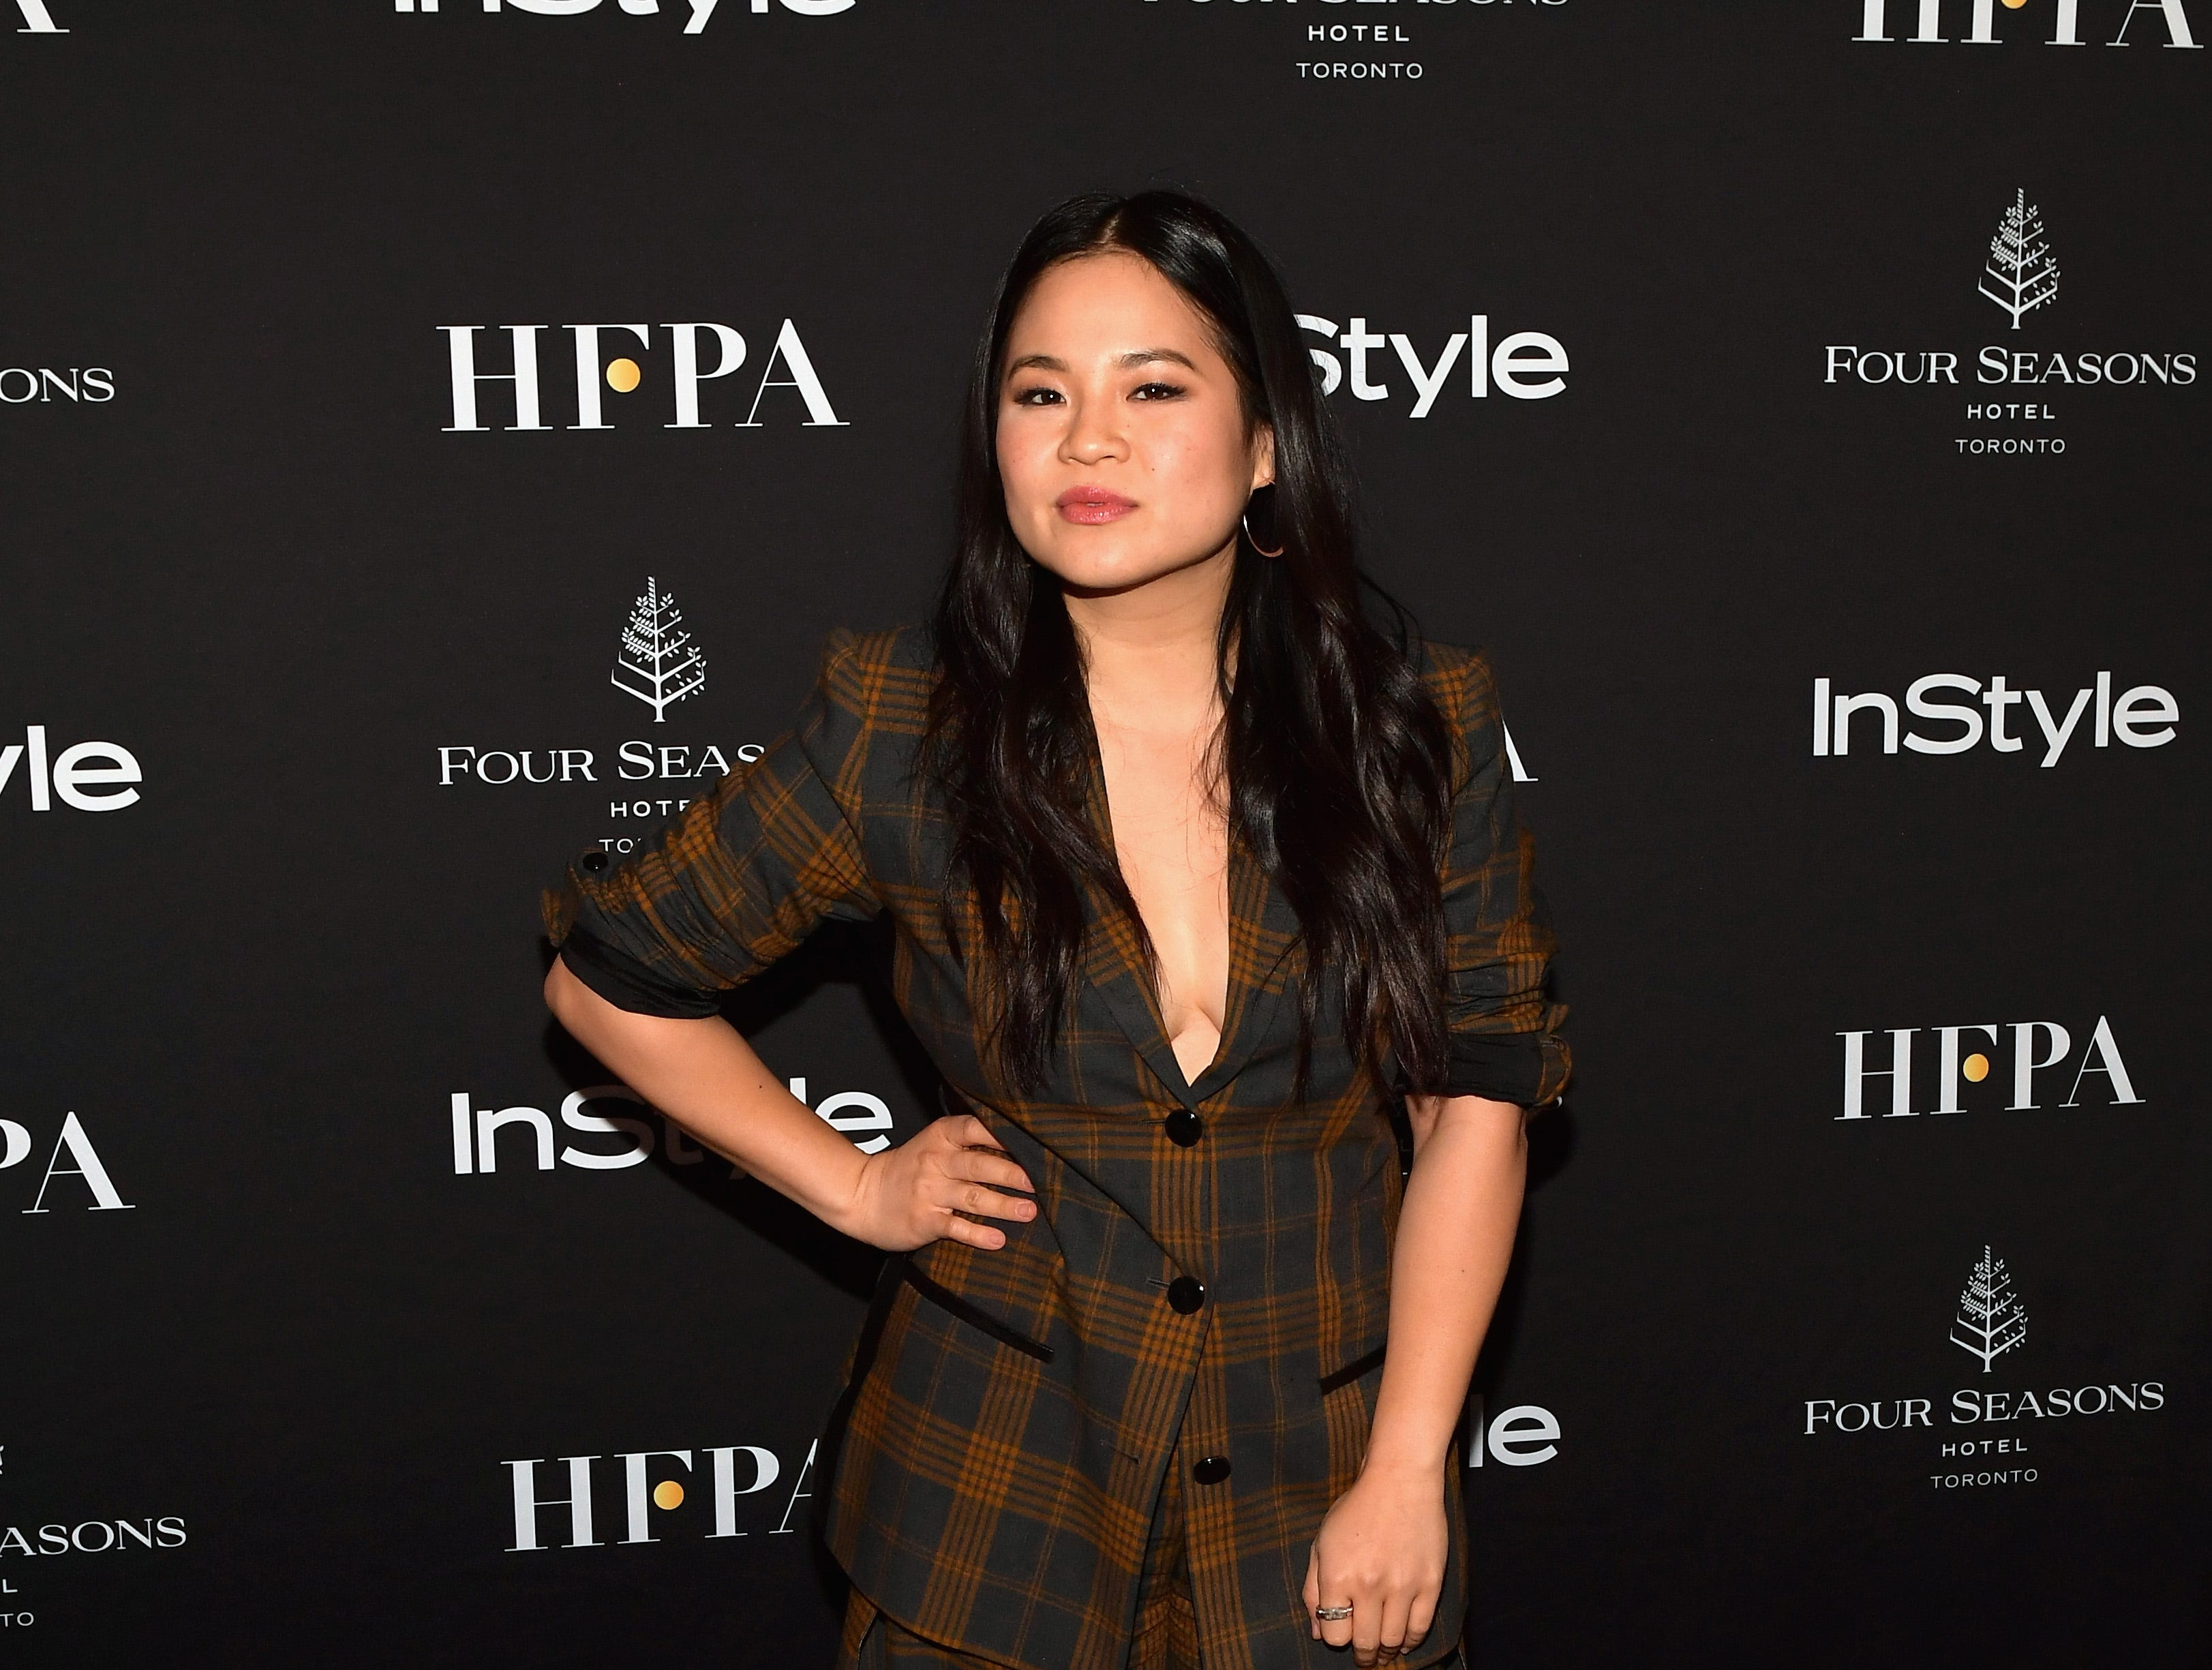 TORONTO, ON - SEPTEMBER 08:  Kelly Marie Tran attends 2018 HFPA and InStyle's TIFF Celebration at the Four Seasons Hotel on September 8, 2018 in Toronto, Canada.  (Photo by Matt Winkelmeyer/Getty Images for InStyle) ORG XMIT: 775214192 ORIG FILE ID: 1029583058